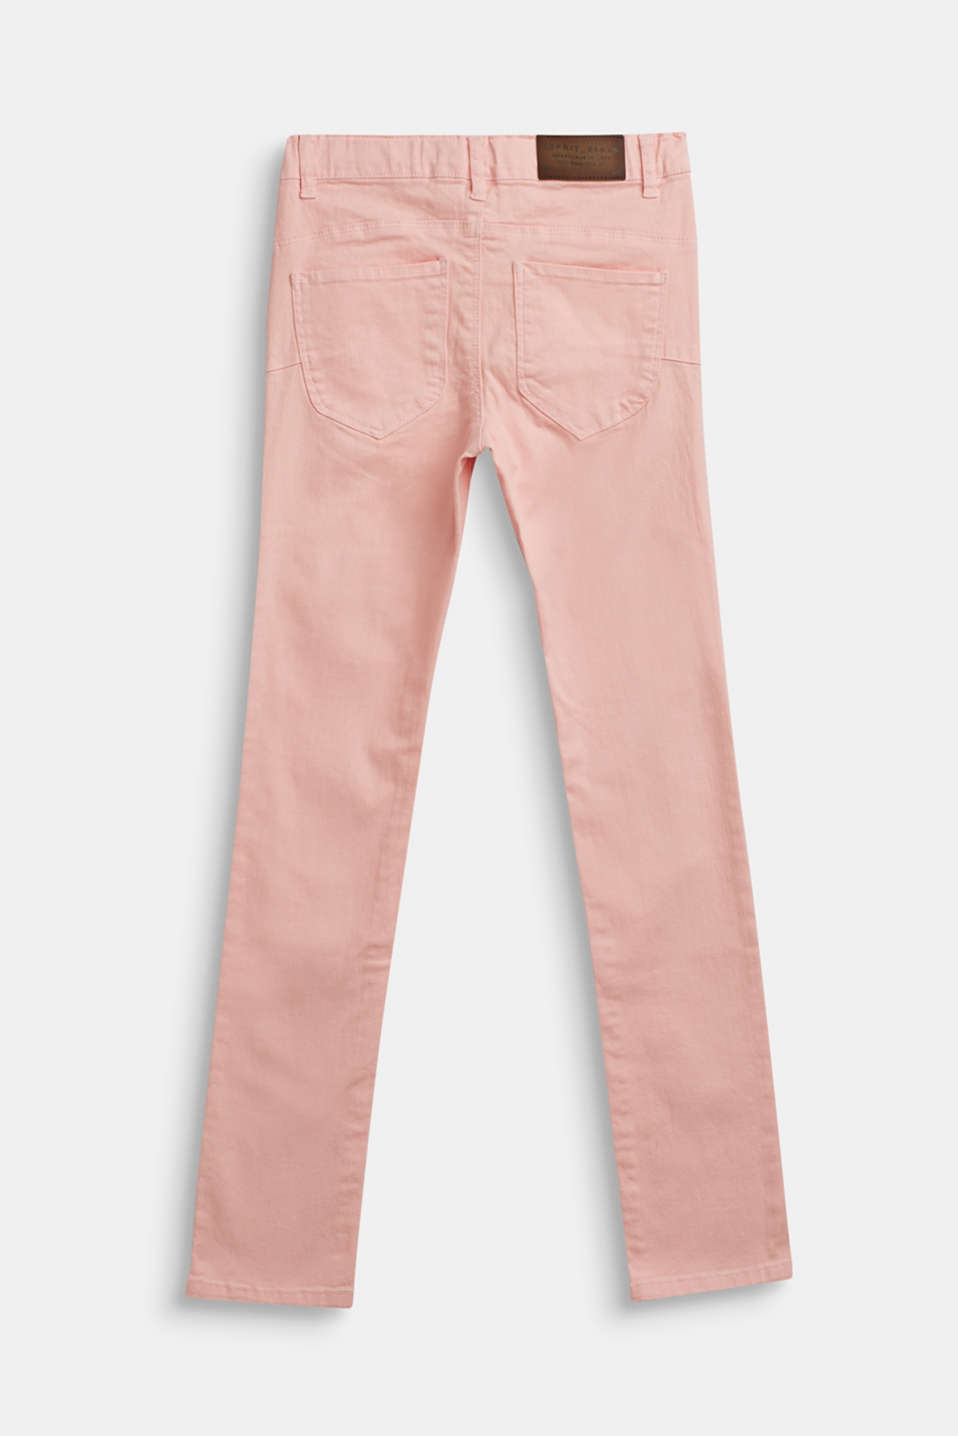 Coloured stretch jeans, LCTINTED ROSE, detail image number 1